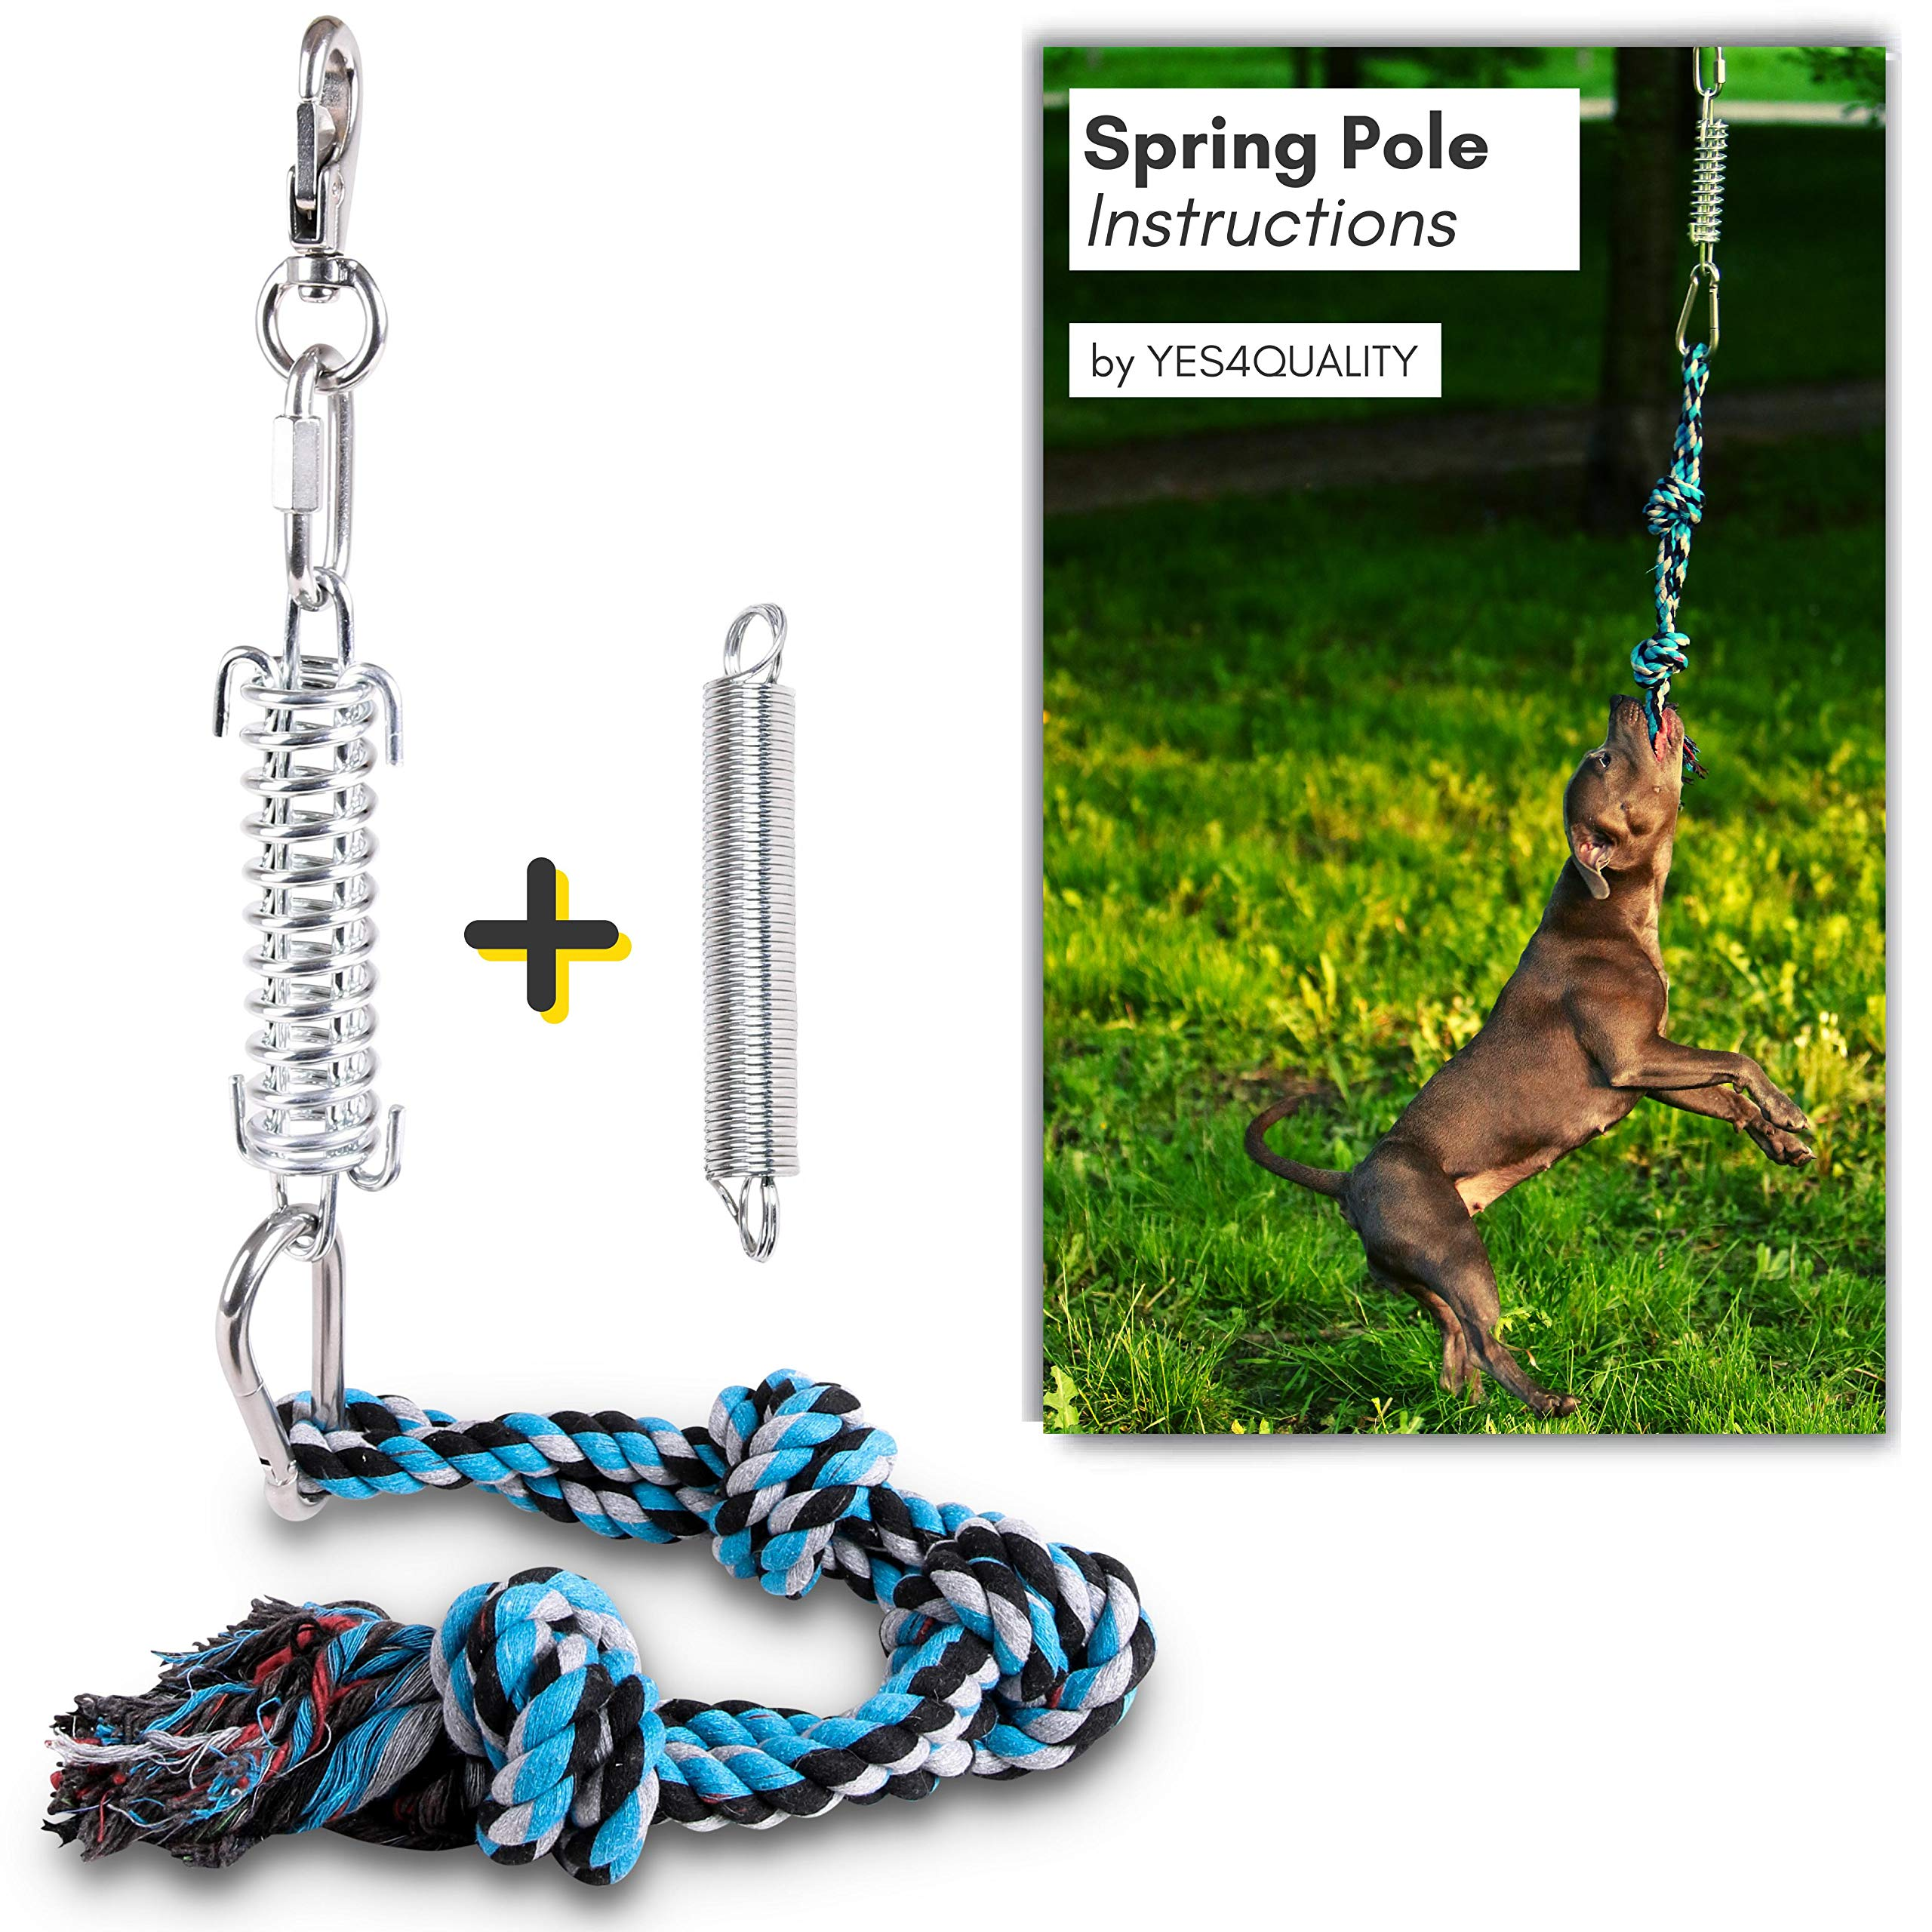 Durable Spring Pole for Pitbull - Strong Dog Rope Toy & 2 Different Capacity Springs Included - Ideal for Medium to Large Dogs & Puppies - Safe Outdoor Exercise, Pull & Tug of War Toy - Muscle Builder by YES4QUALITY